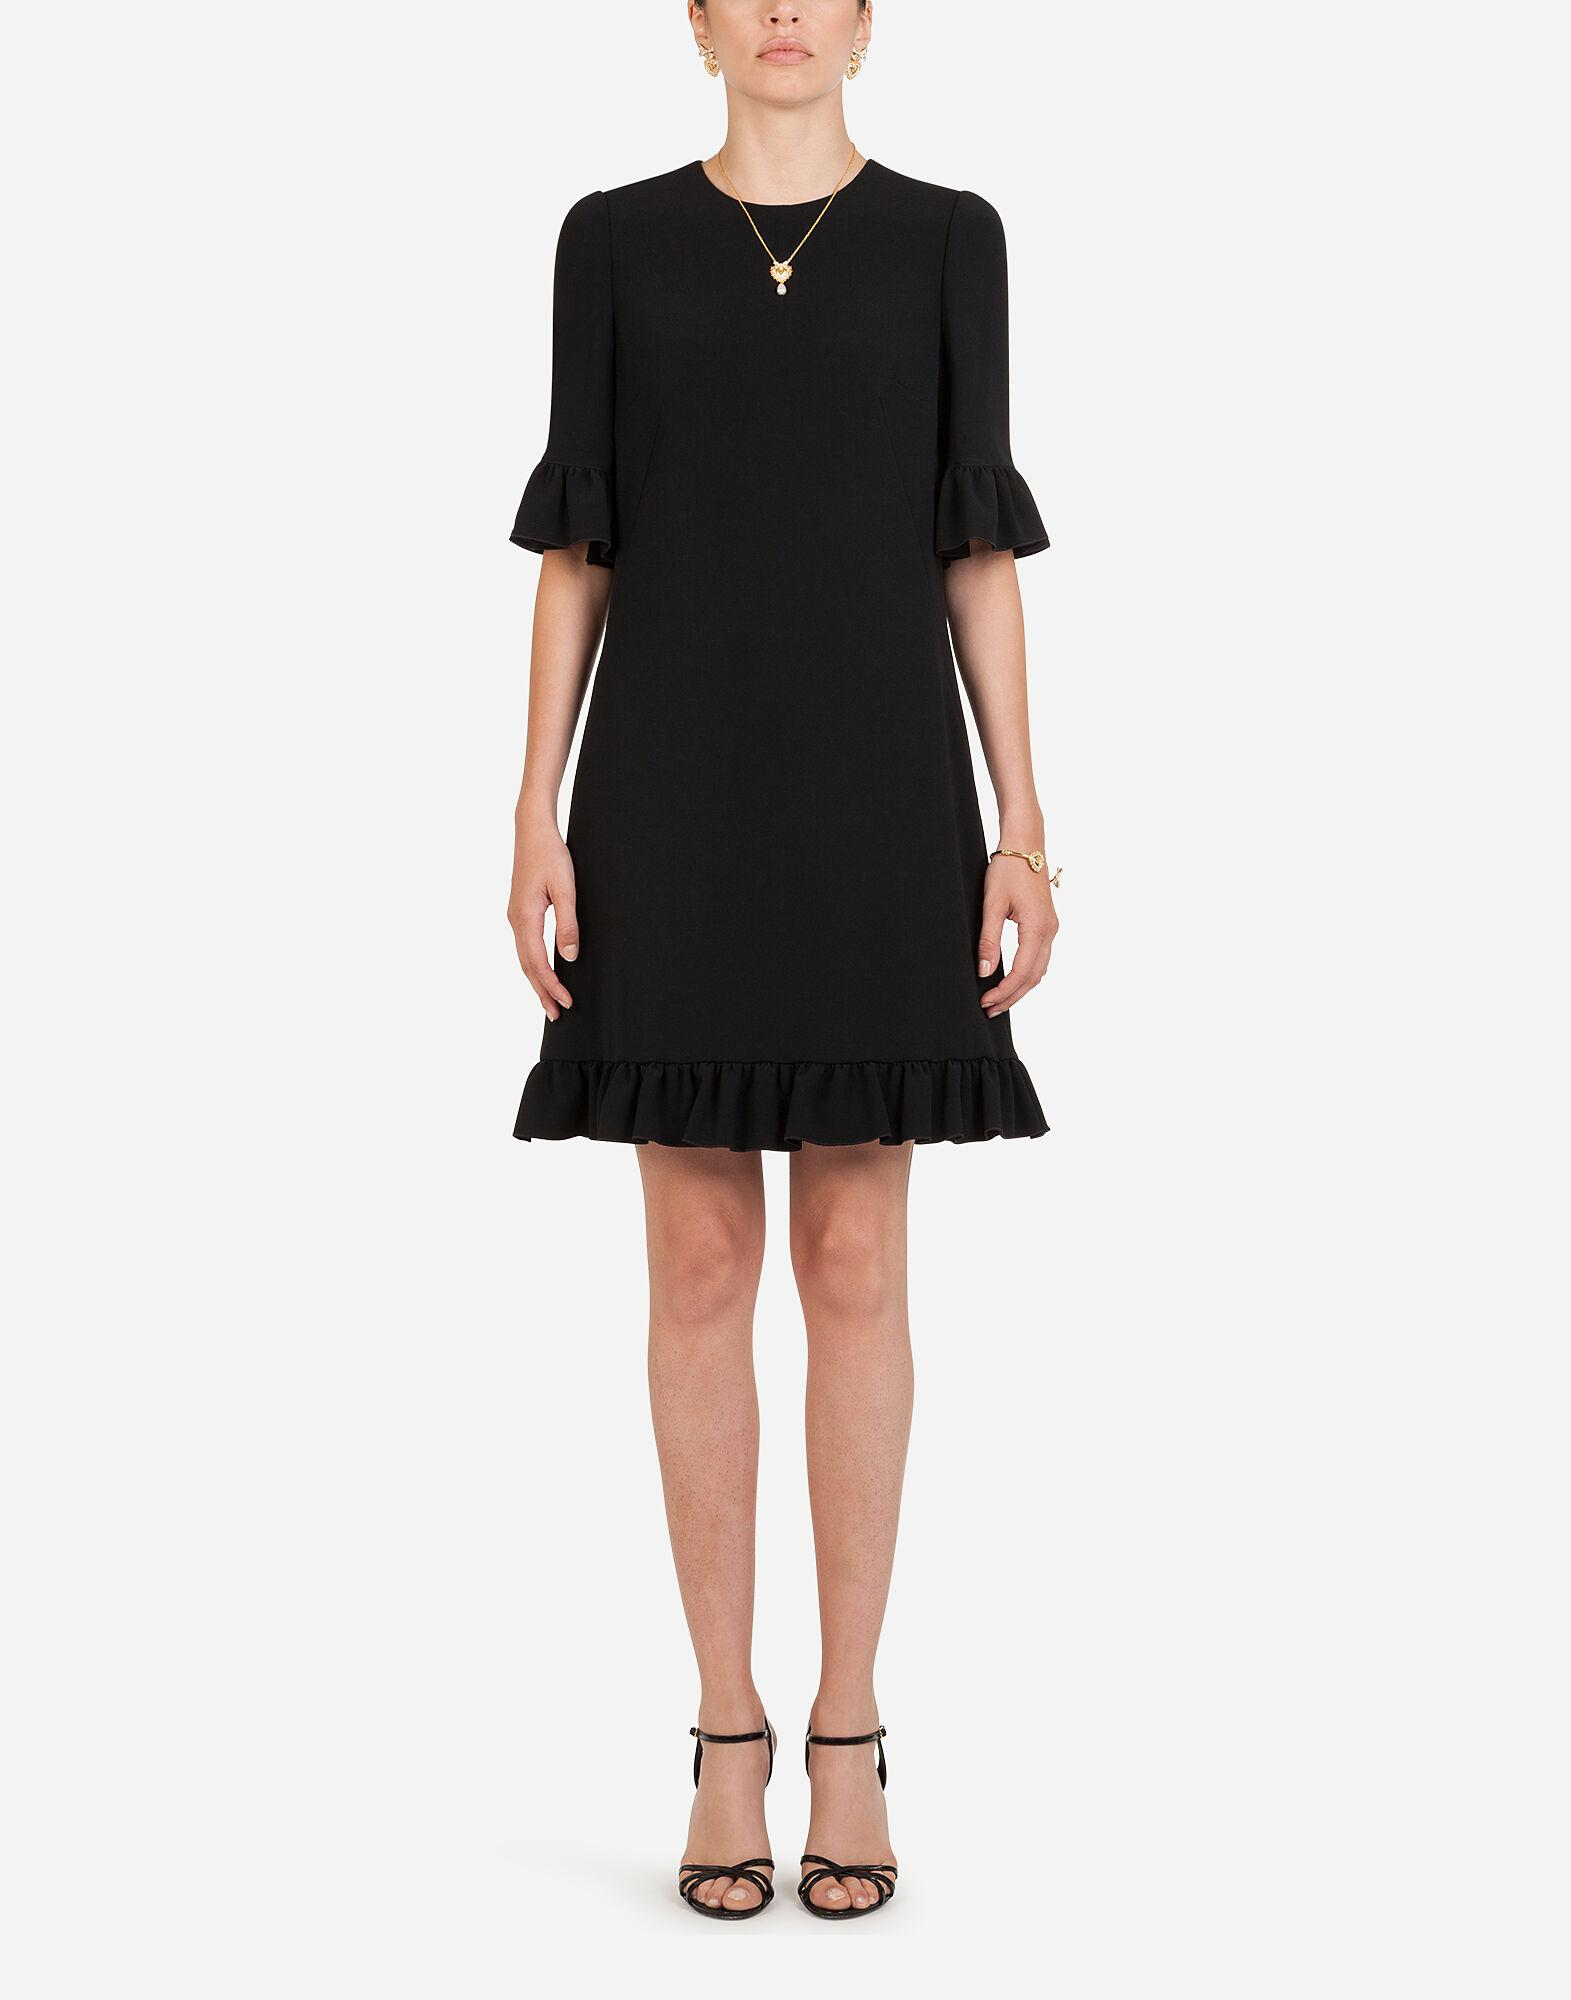 Short cady dress with ruche detailing